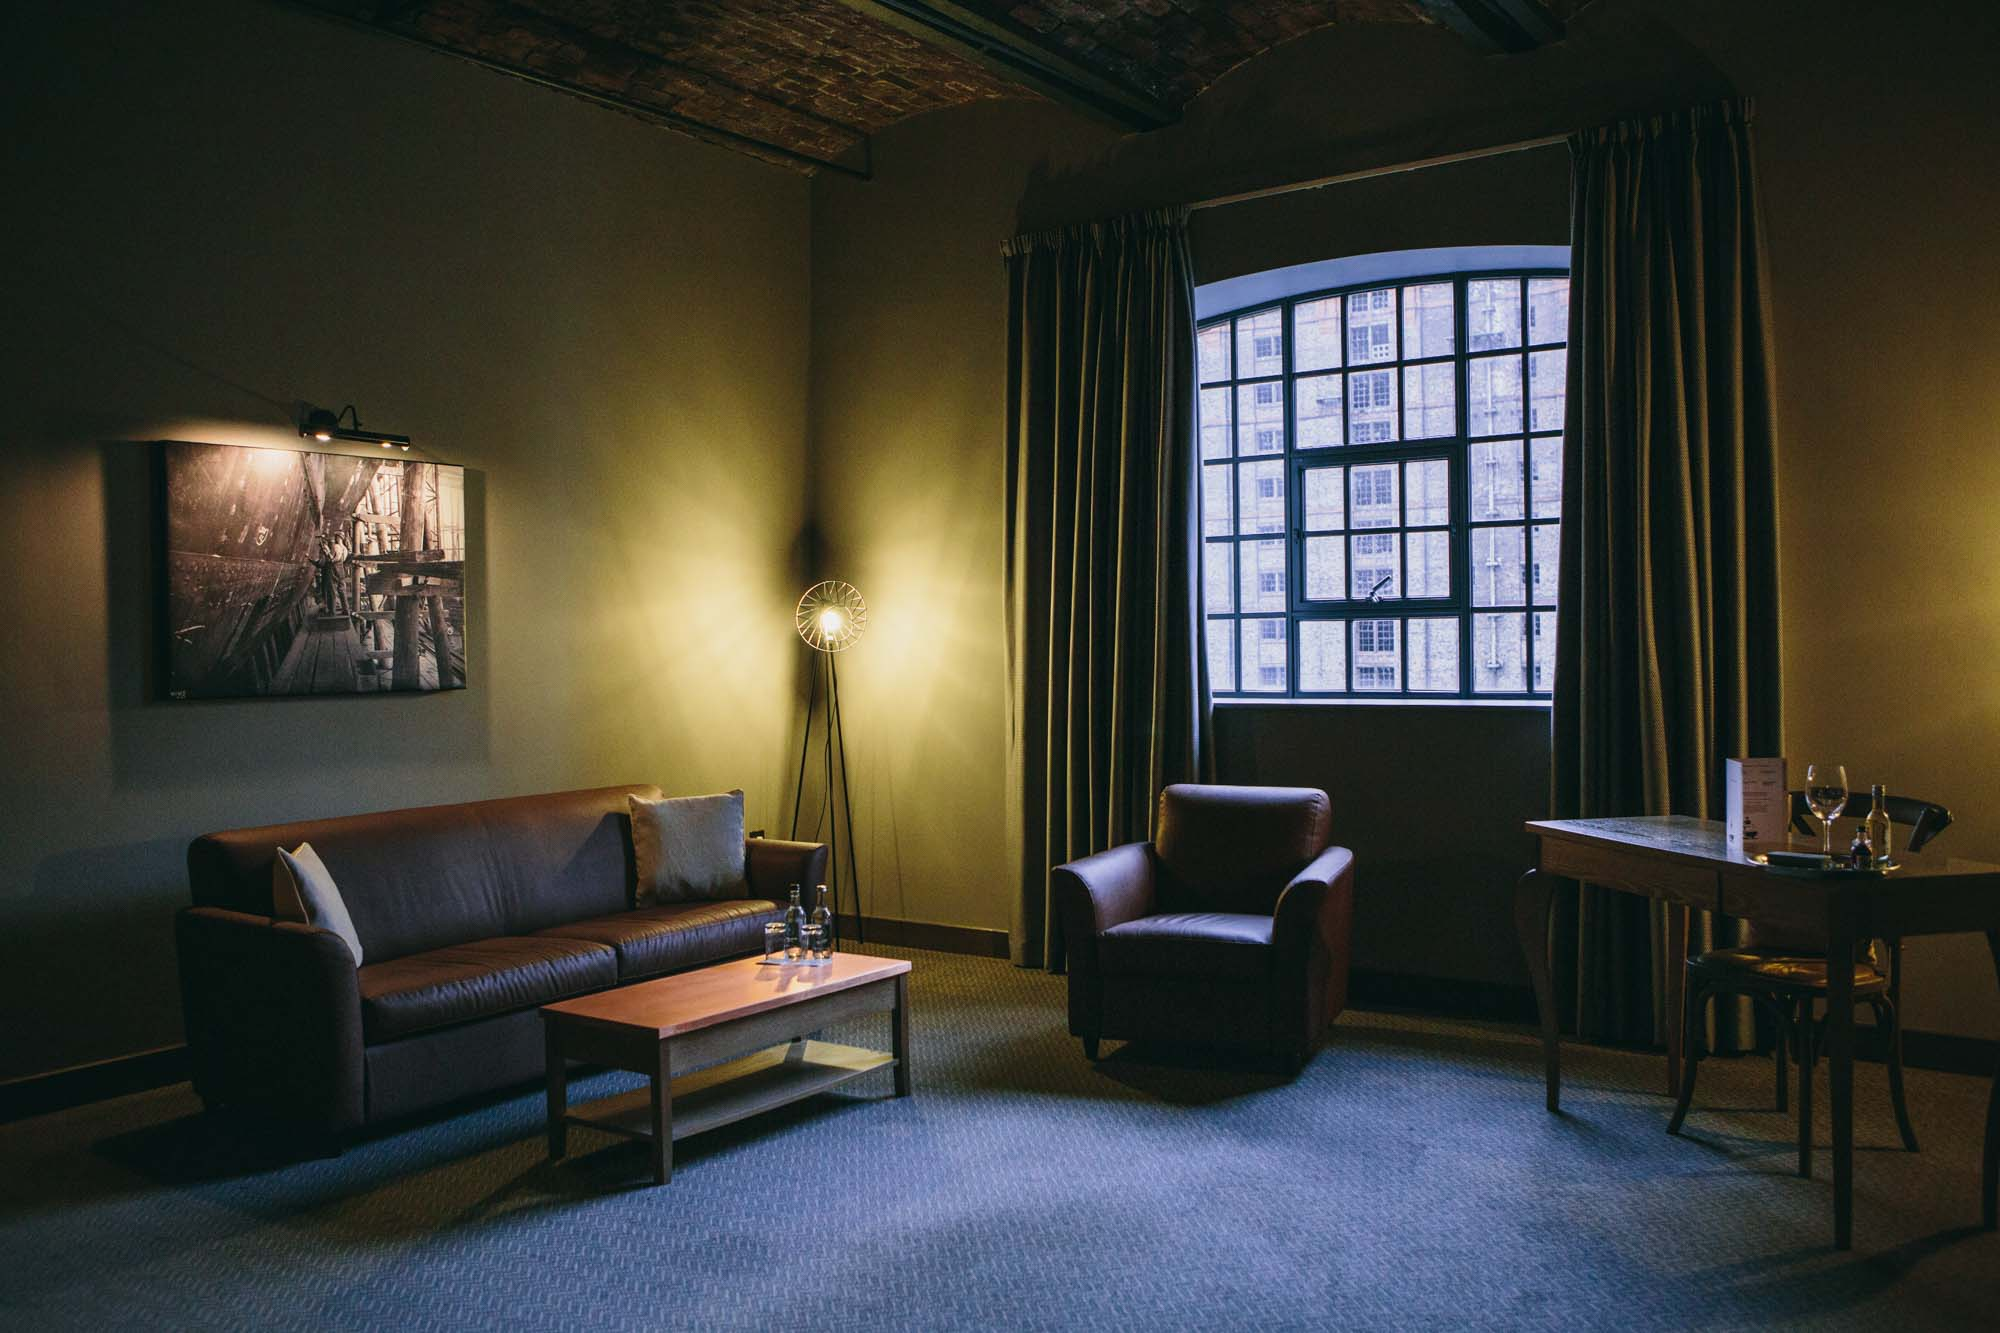 Liverpool's best hotels – Titanic Hotel Liverpool